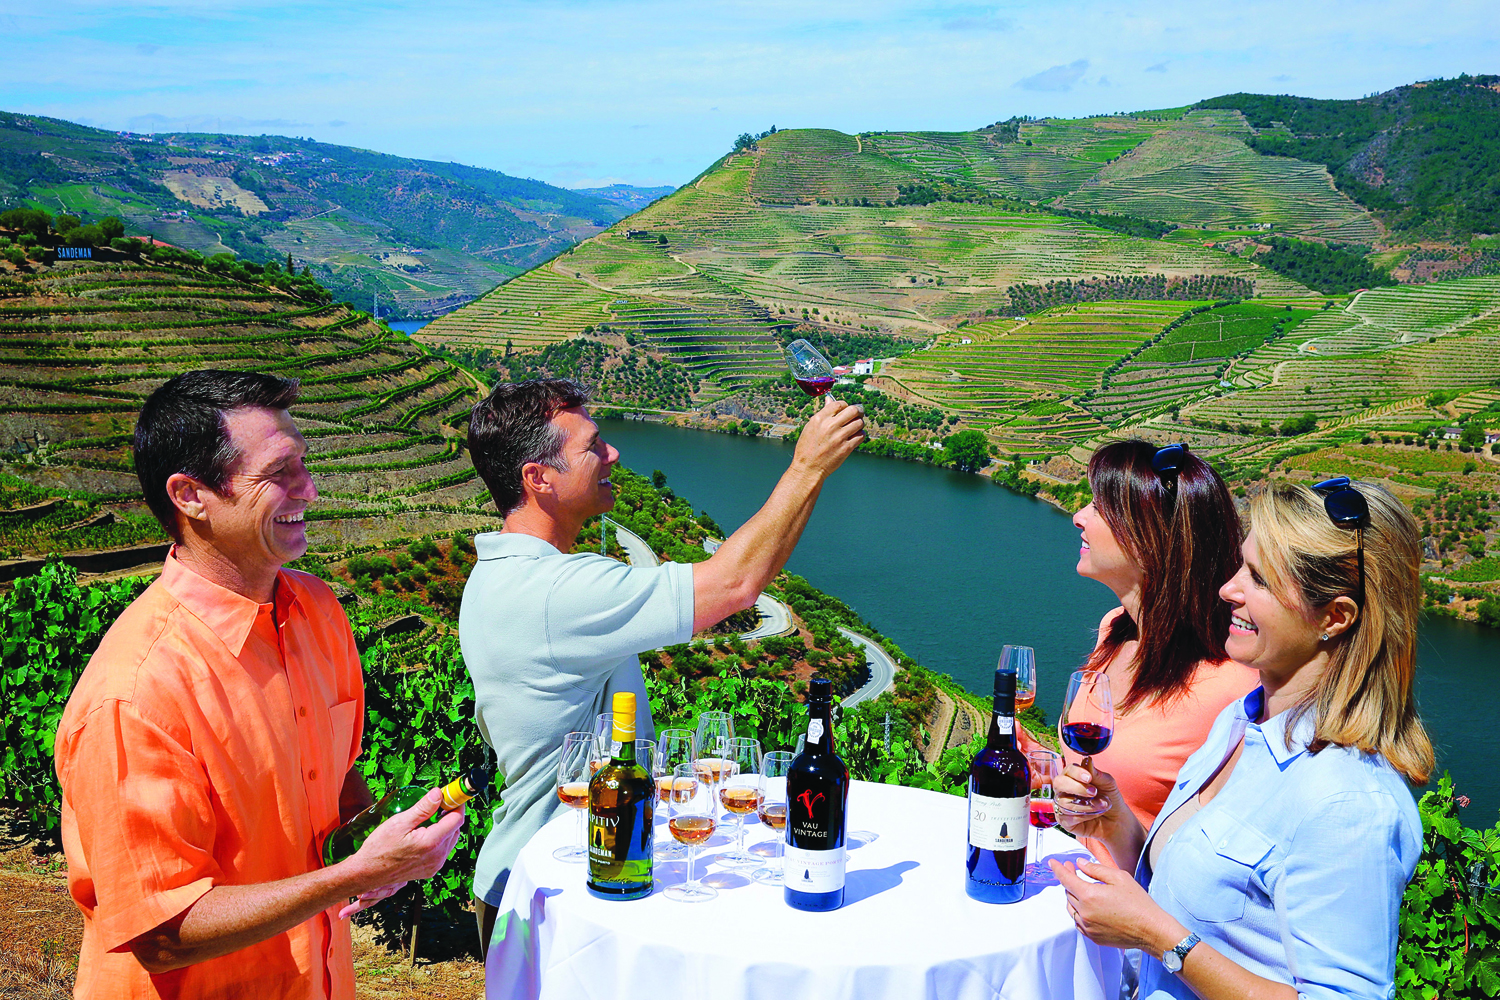 While sailing on AmaVida in Portugal, guests can go on visits to vineyards.